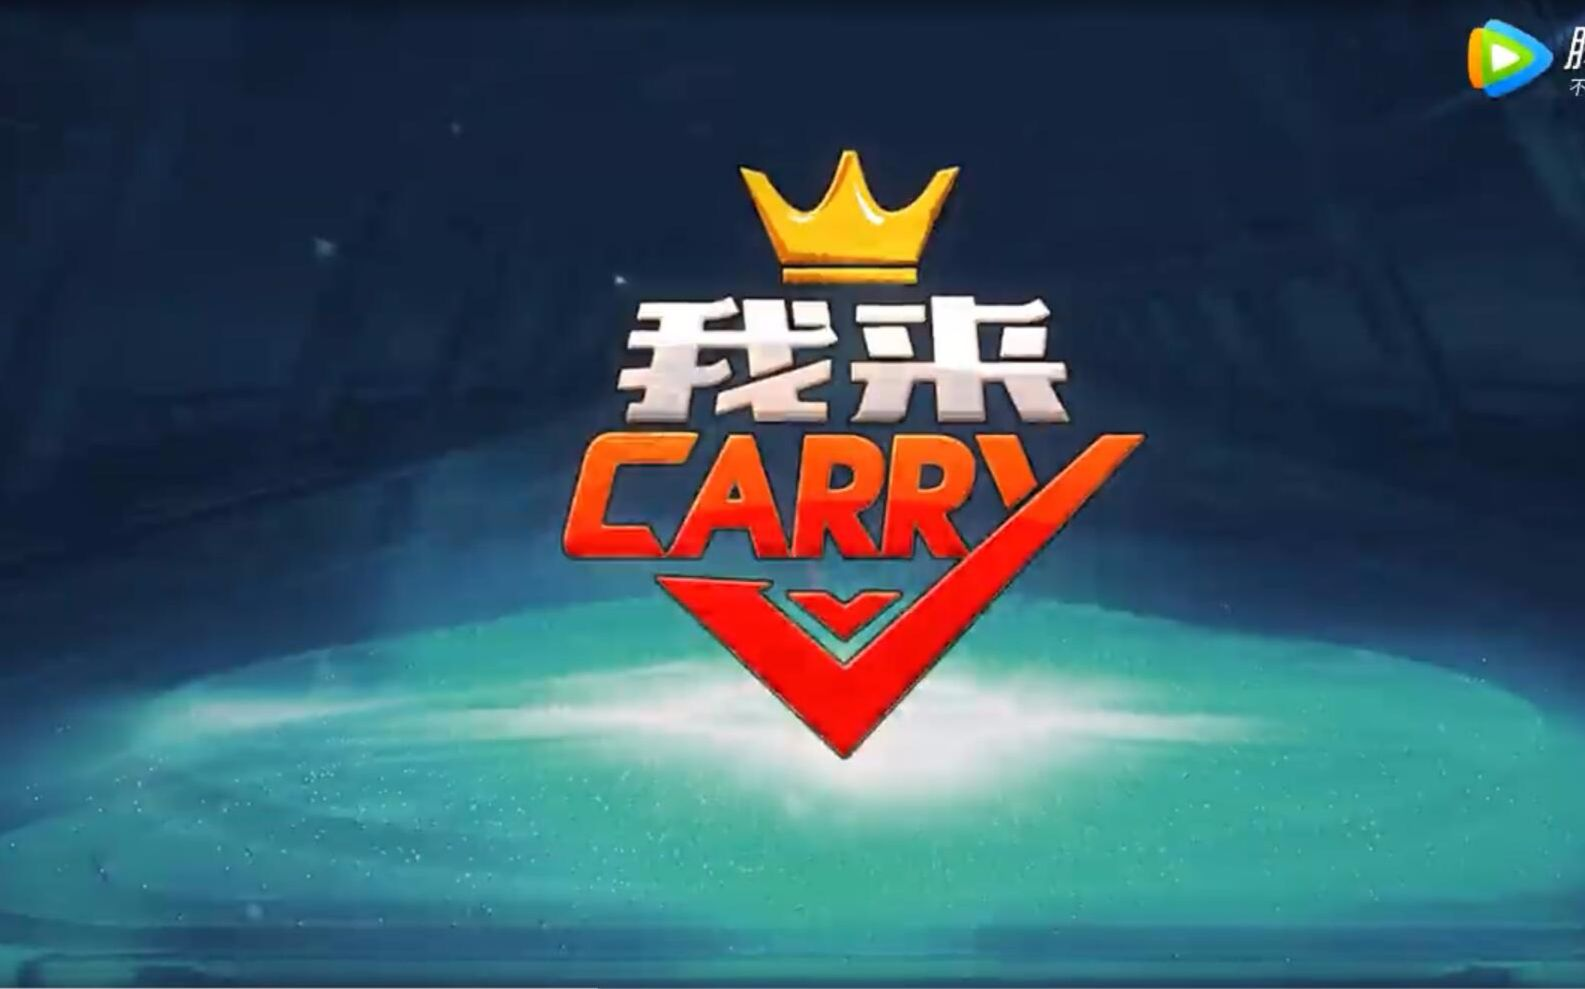 carry_carry_carry on 信义